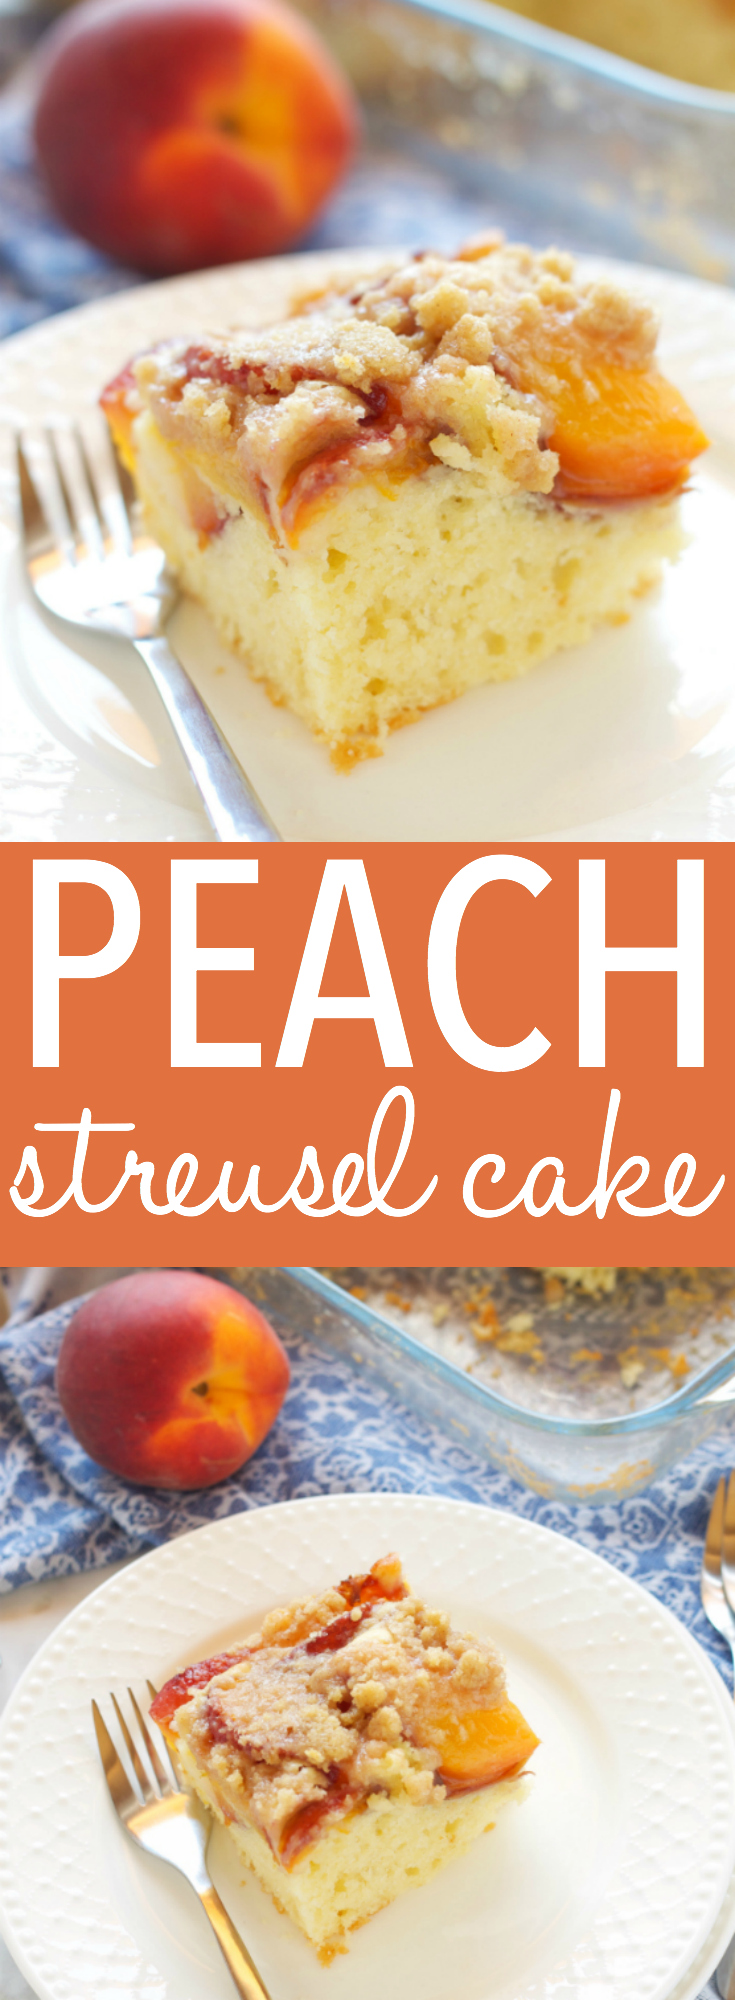 This Peach Streusel Cake is the perfect summer dessert with a tender cake base and a delicious streusel topping - make it with fresh or canned peaches! Recipe from thebusybaker.ca! #peachcake #easypeachcake #streuselcake #summerdessert